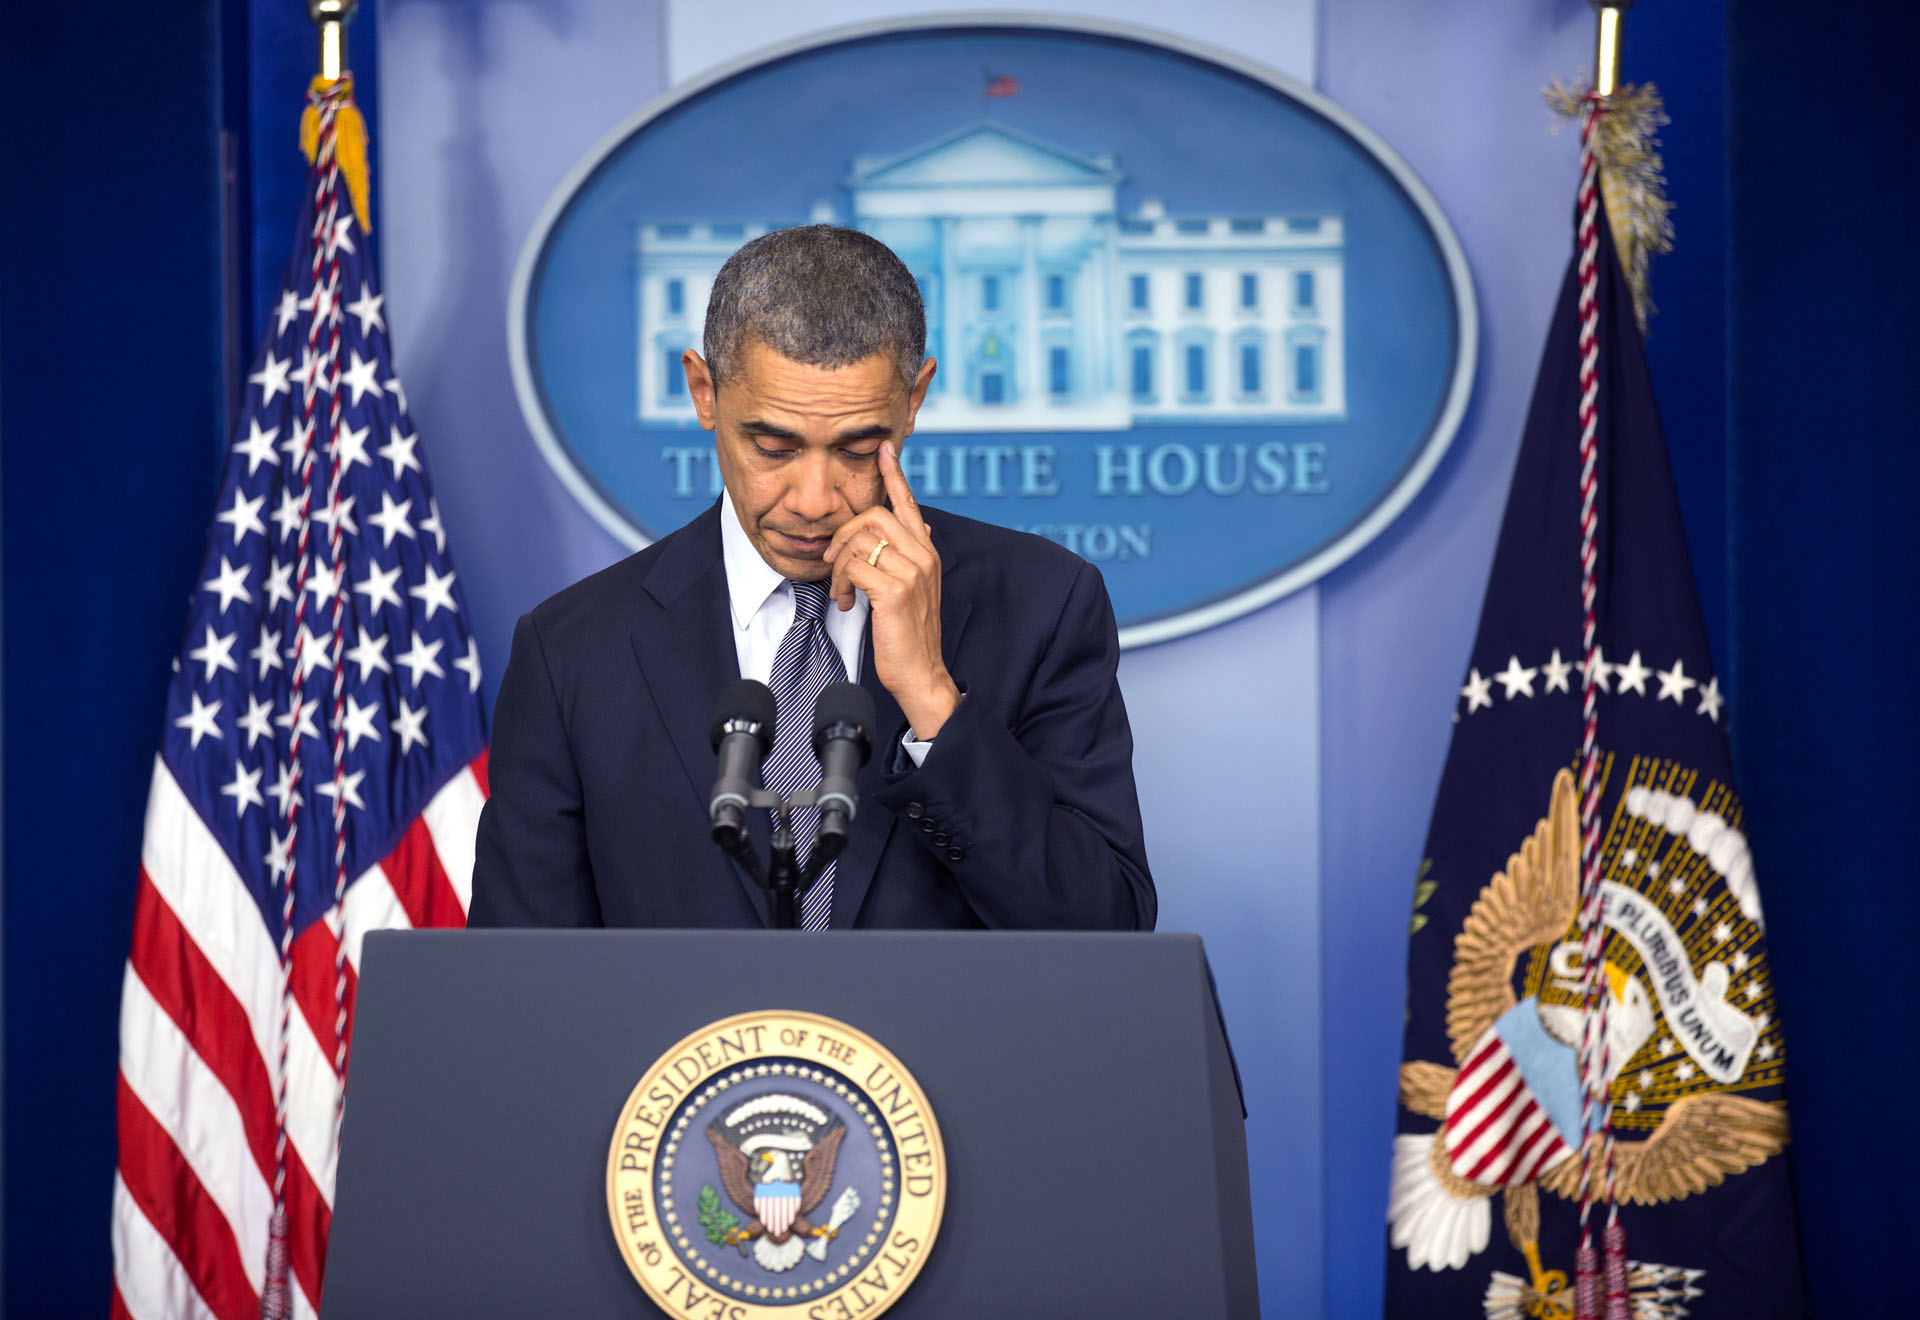 President Obama delivers a statement on the mass shooting at Sandy Hook Elementary School in Newtown, Connecticut, Dec. 14, 2012.